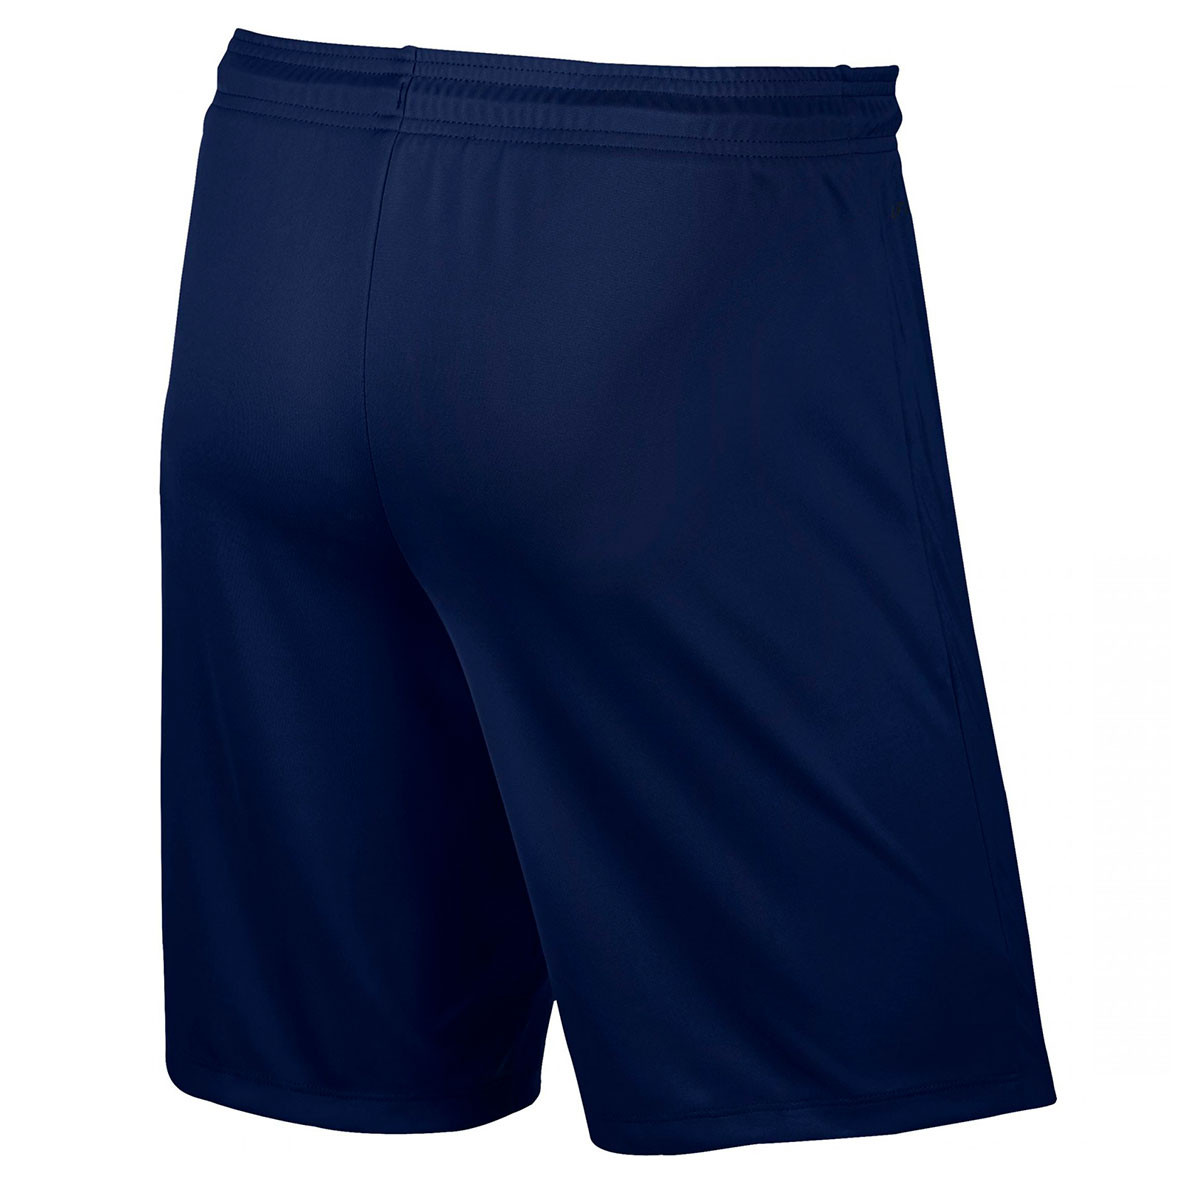 34dd7306c Shorts Nike Park II Knit Midnight navy-White - Football store Fútbol Emotion